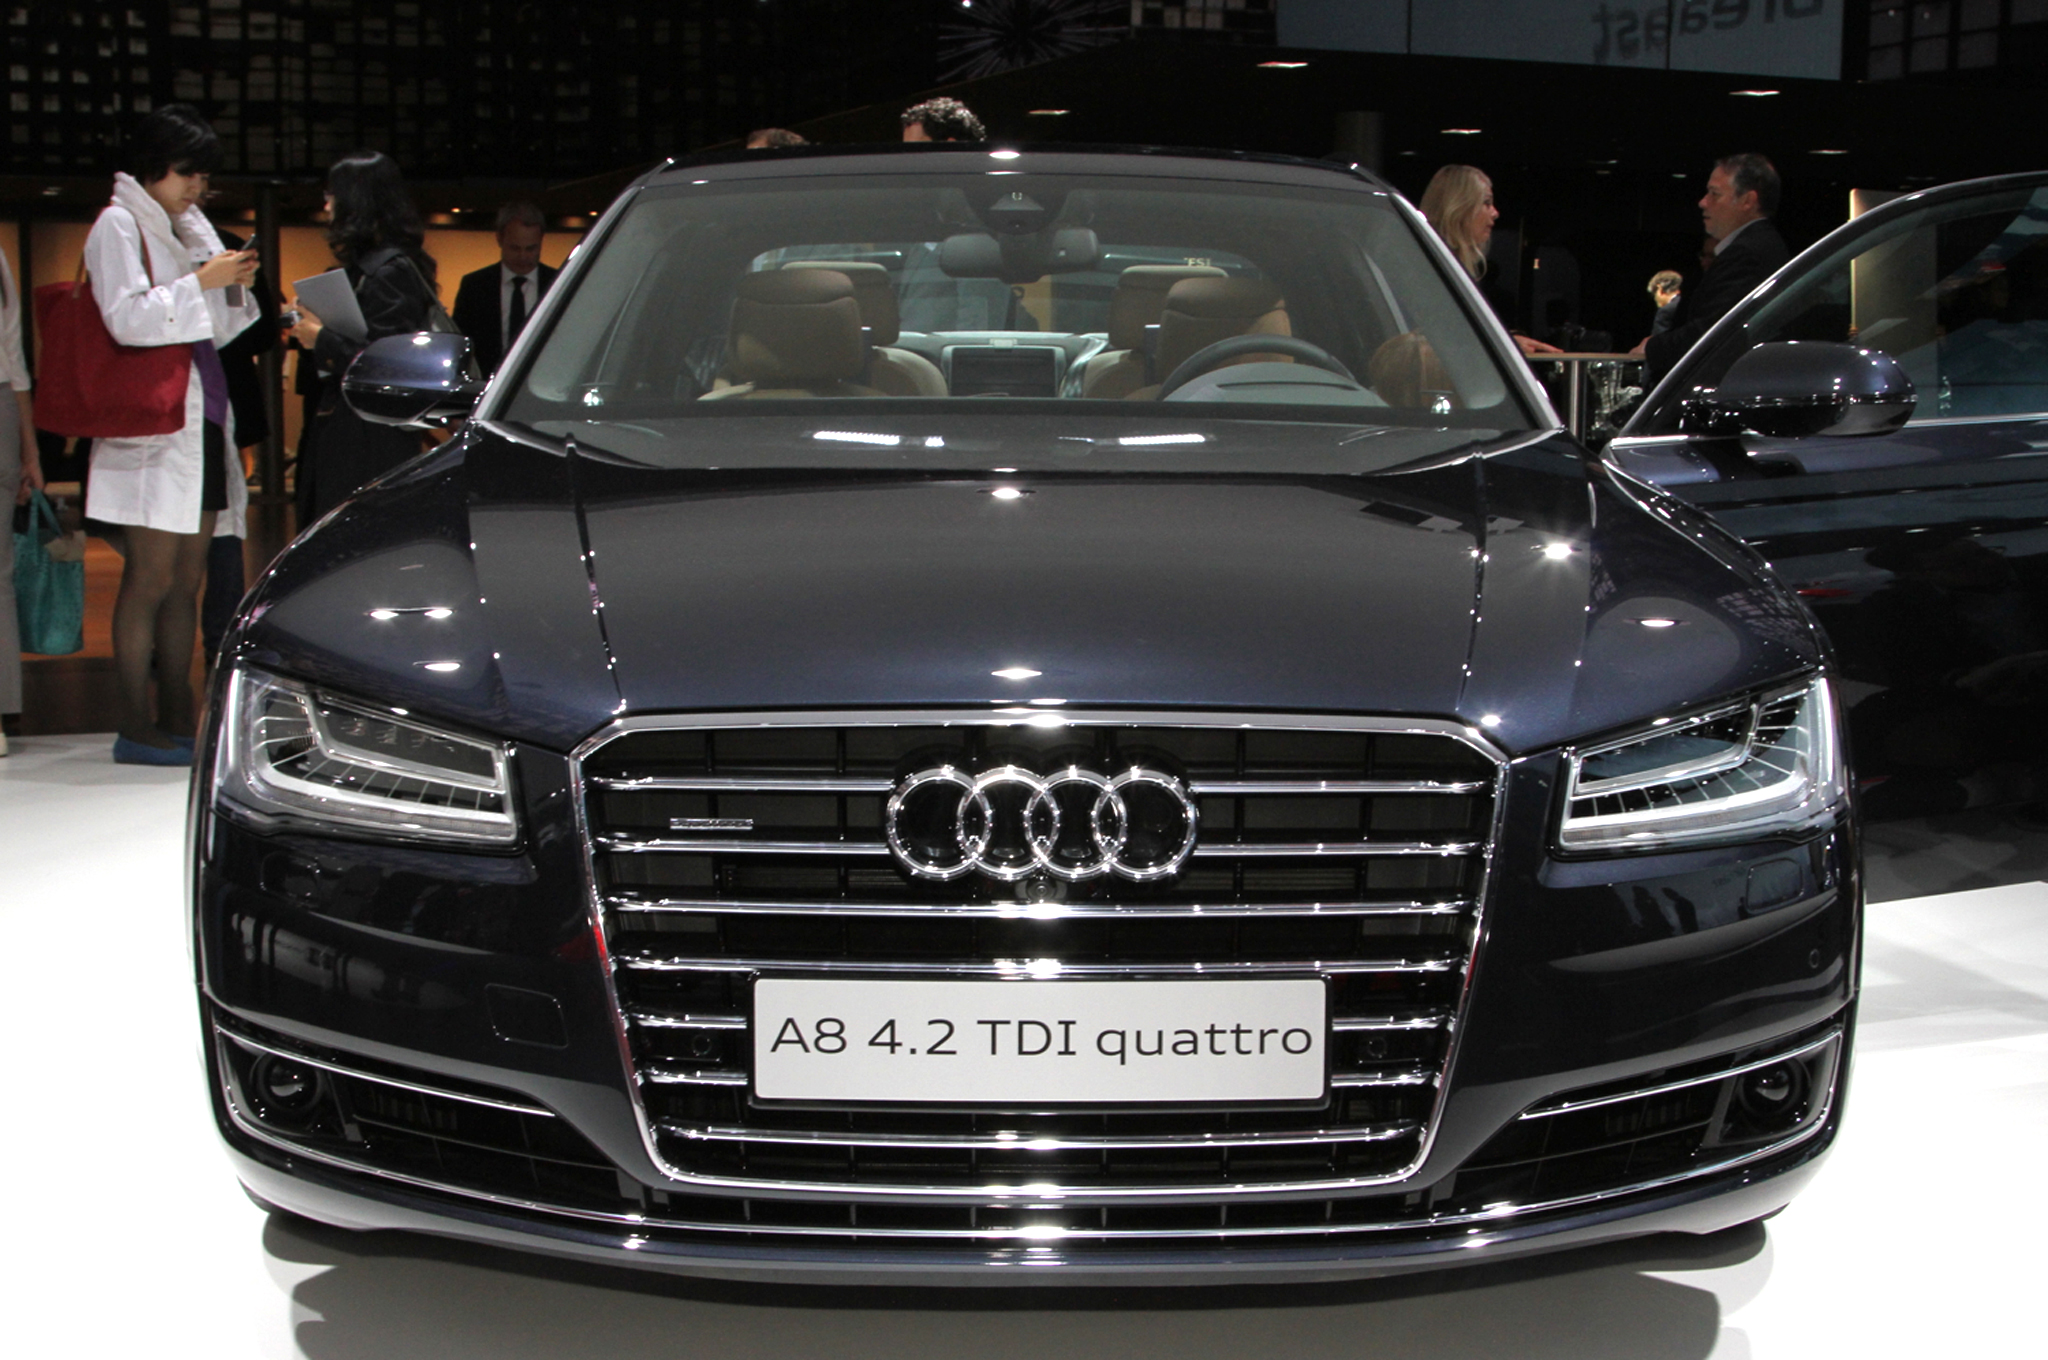 A8 Audi 2015 - it's time to move forward #10